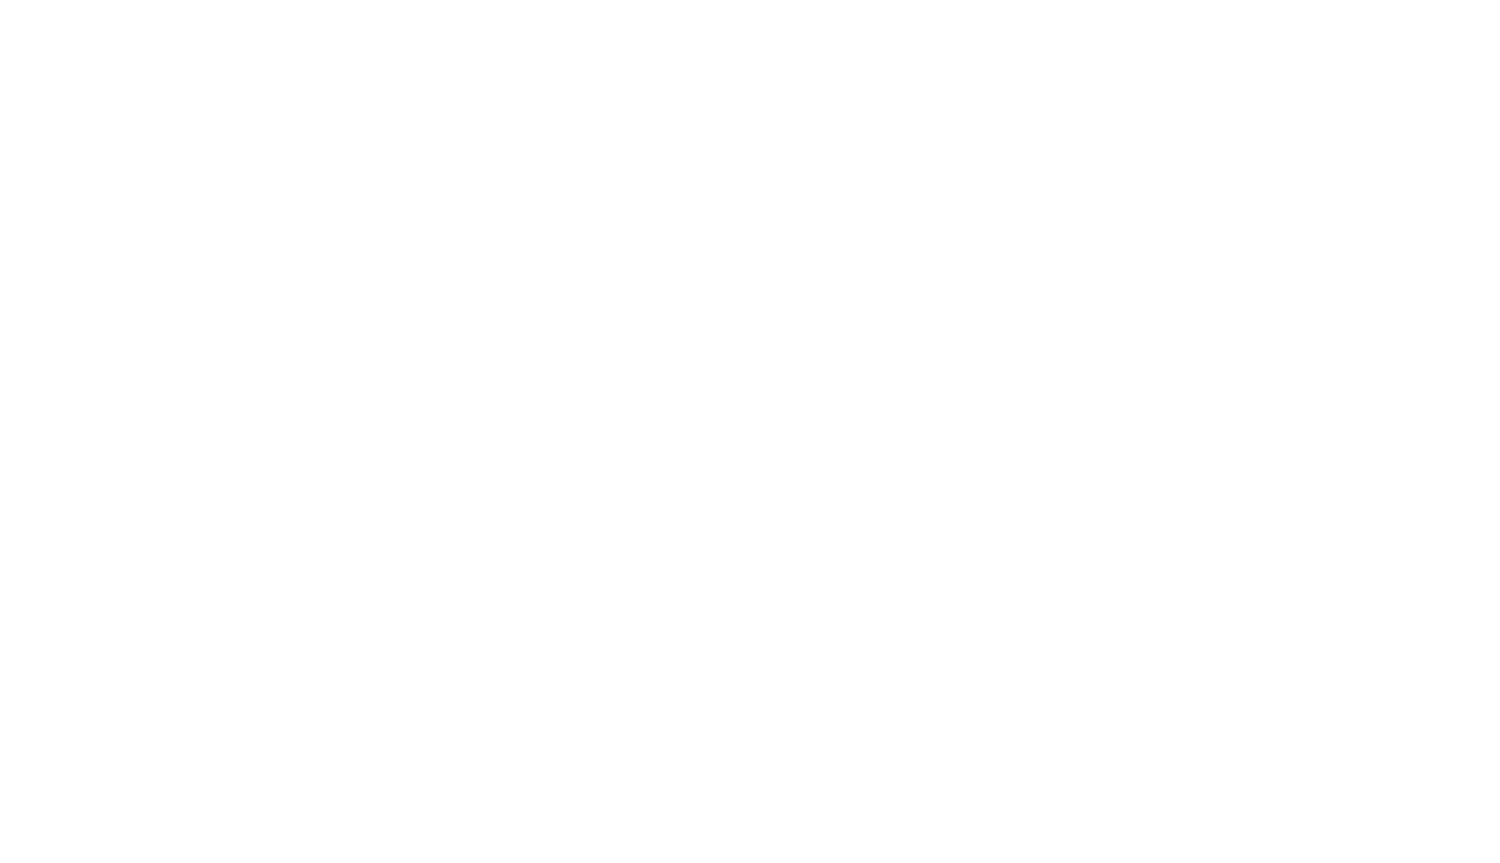 Nigel Hammond Music